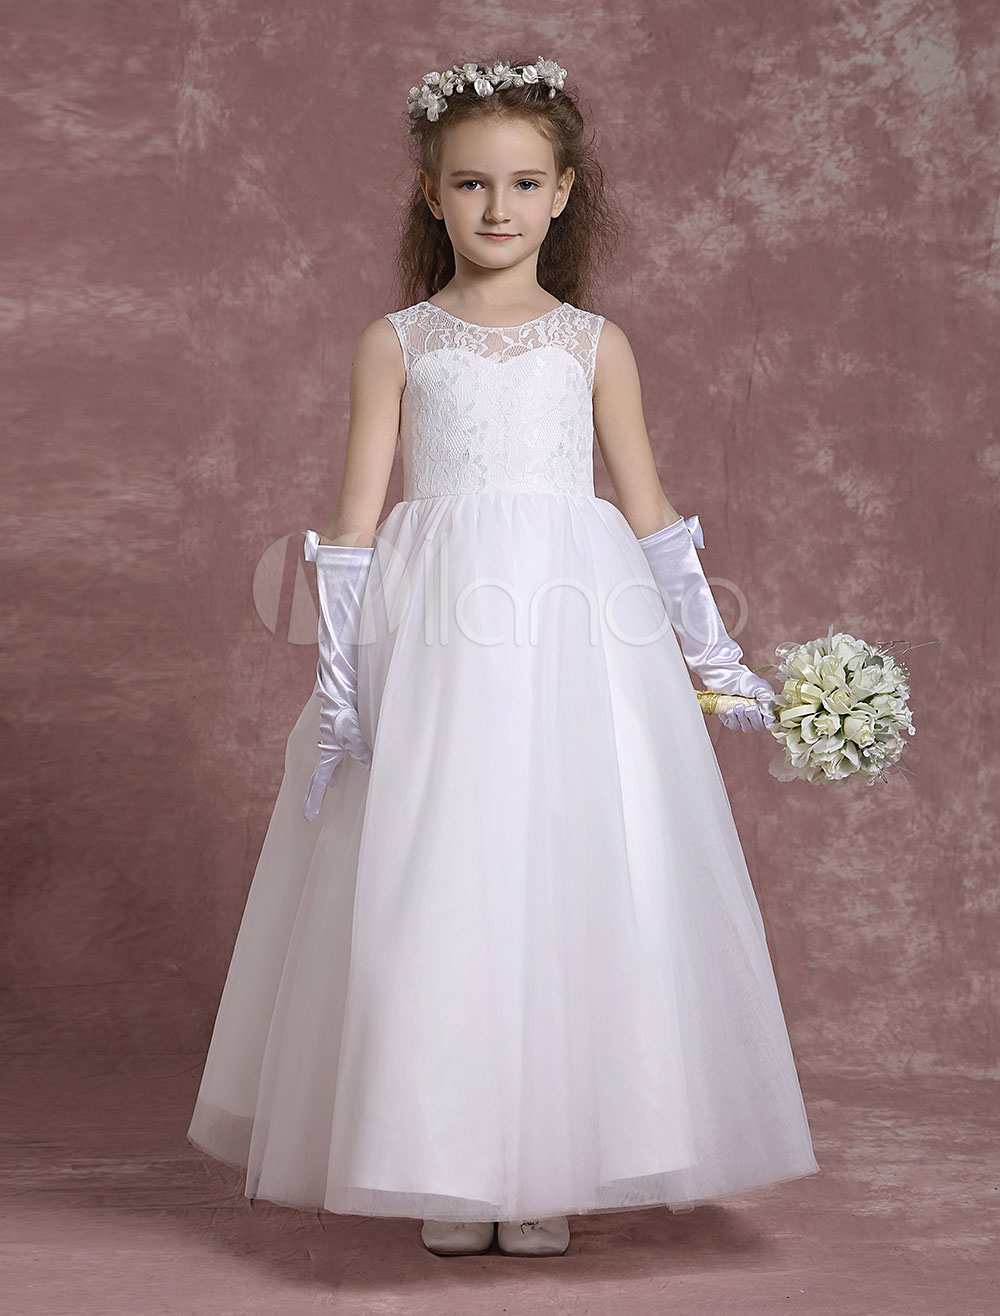 buy toddler flower girl dresses 2017 online. Black Bedroom Furniture Sets. Home Design Ideas